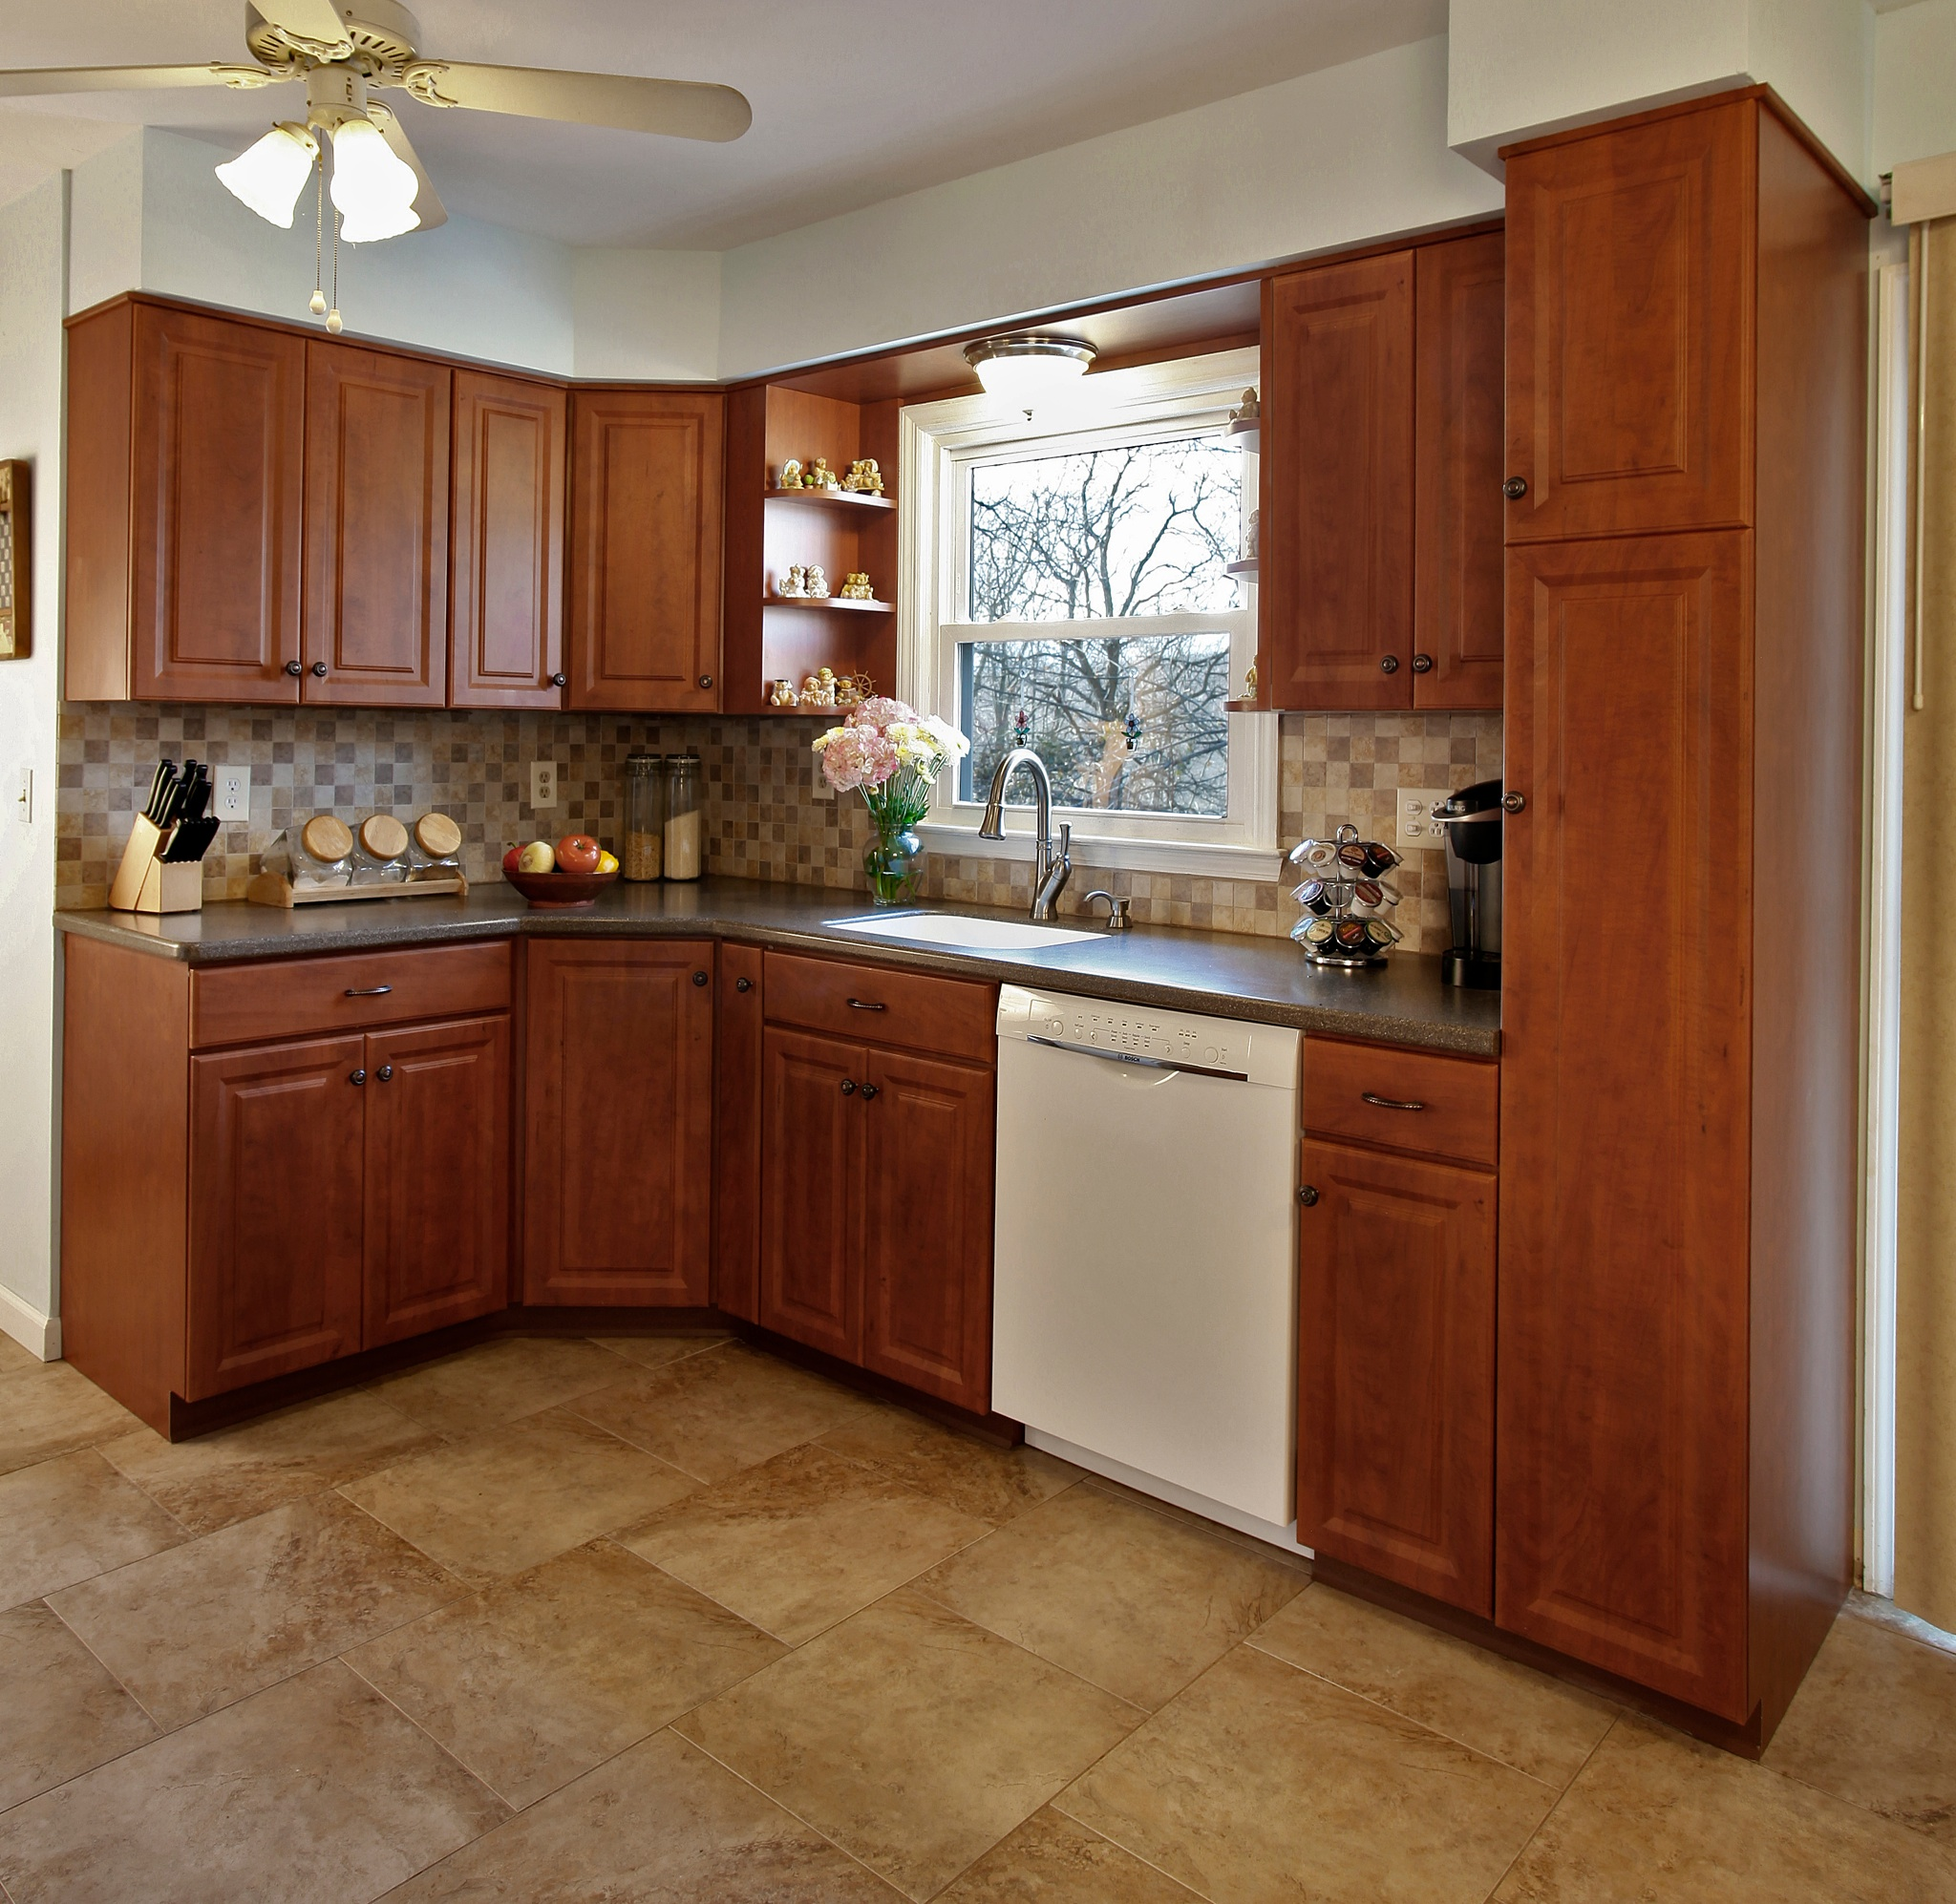 Differences Between 6 Common Types Of Cabinet Doors